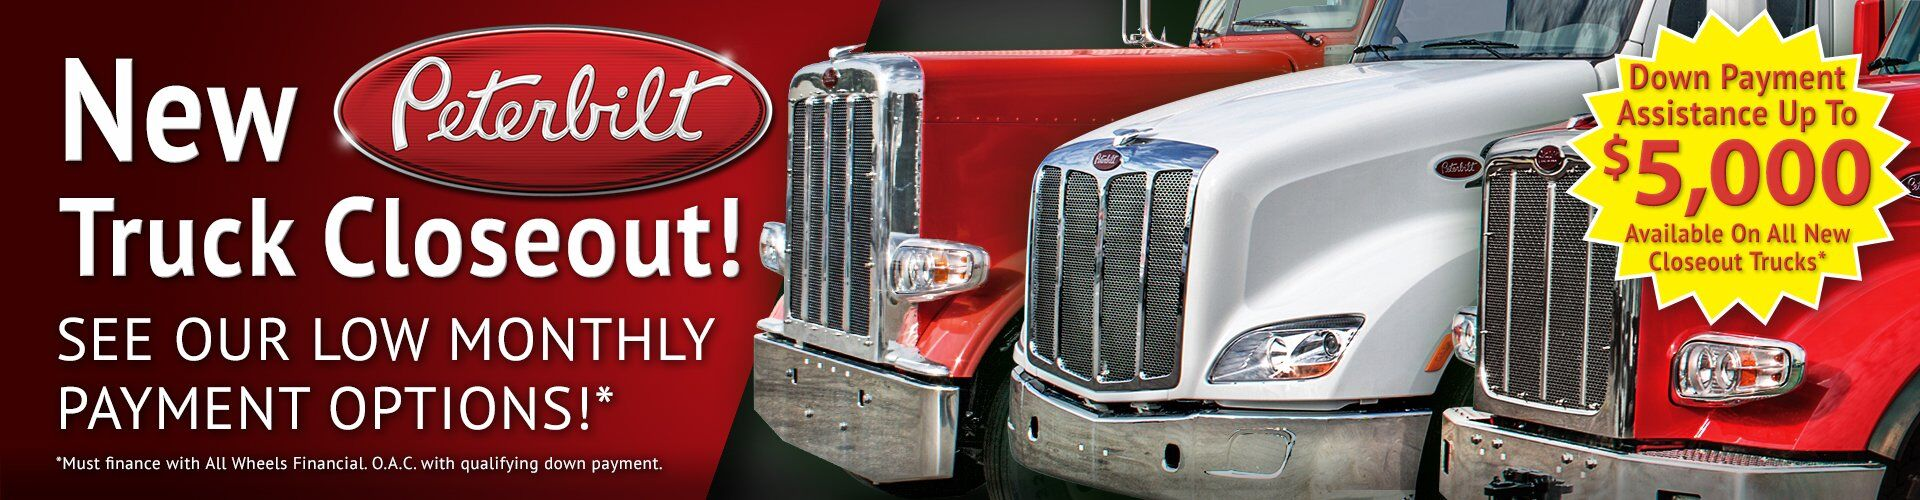 New Peterbilt Truck Closeout